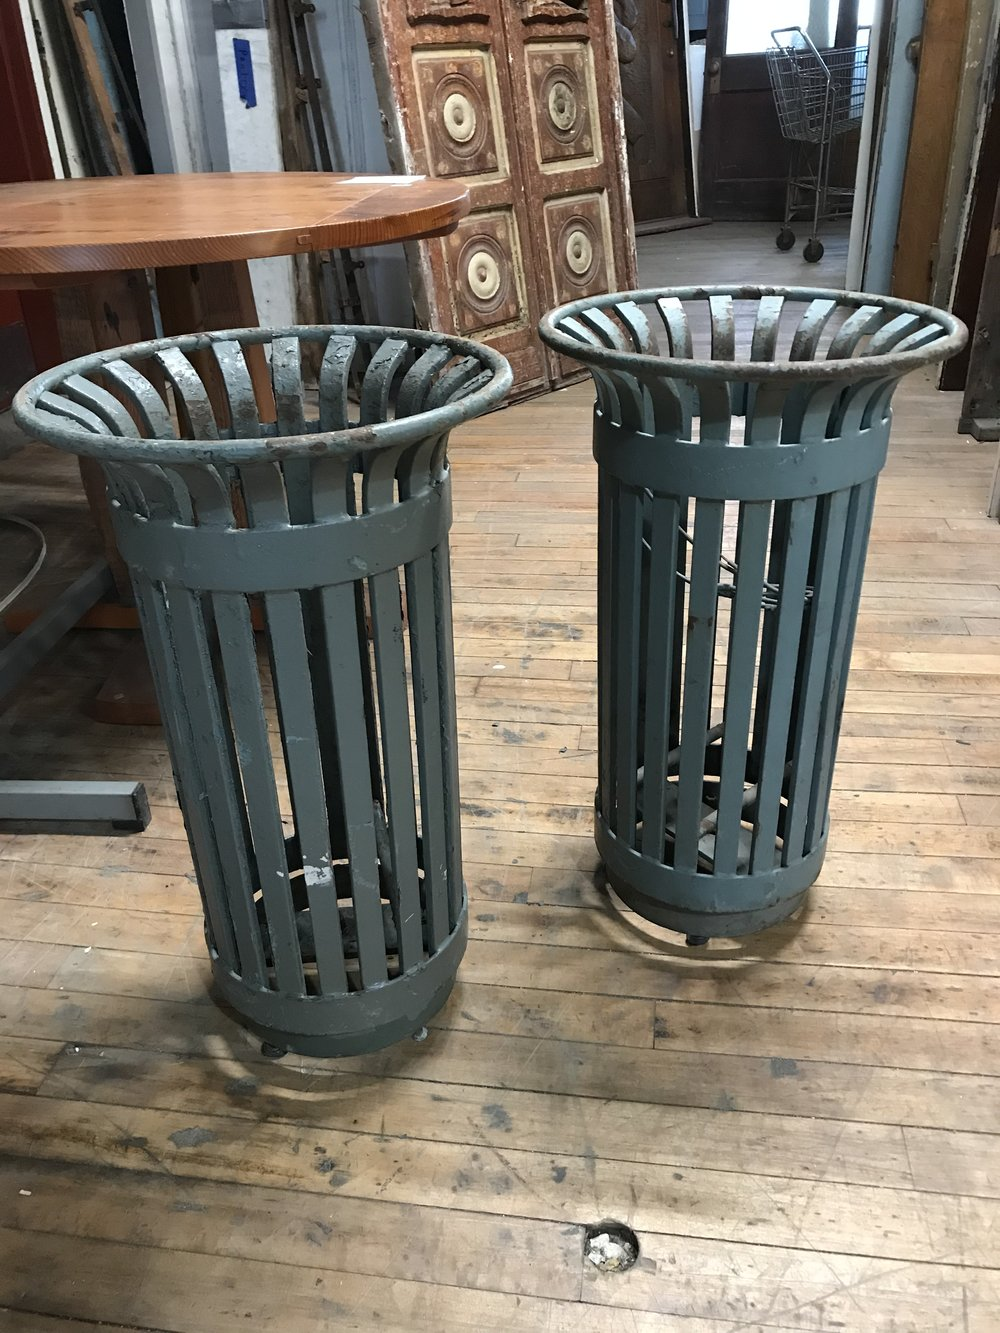 Heavy Iron Trash bins from Tompkins Square Park NYC